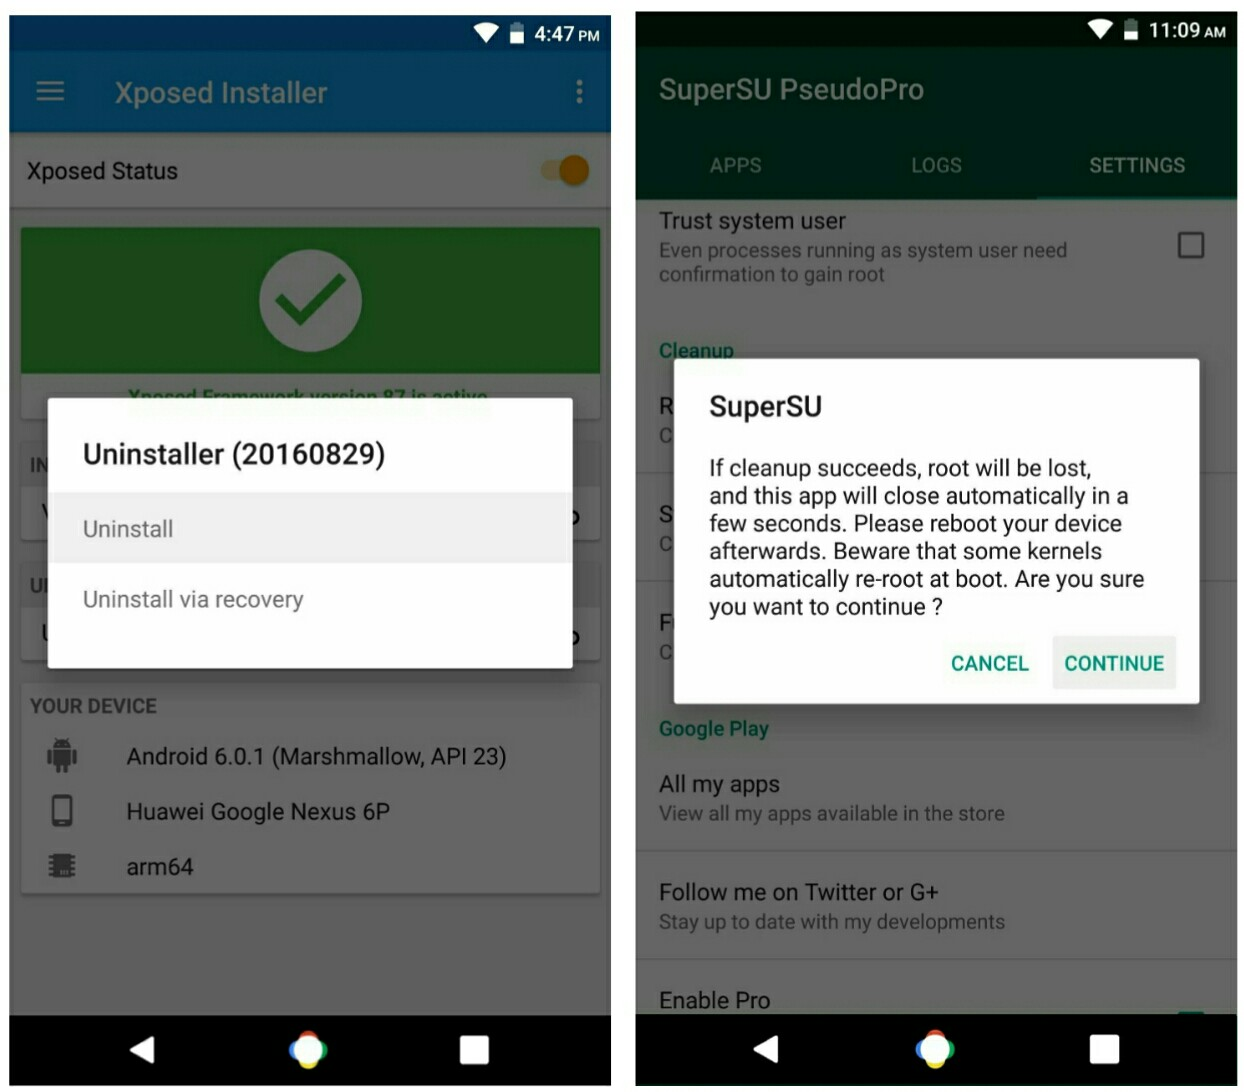 How To Install and Use Magisk to Bypass Google SafetyNet On